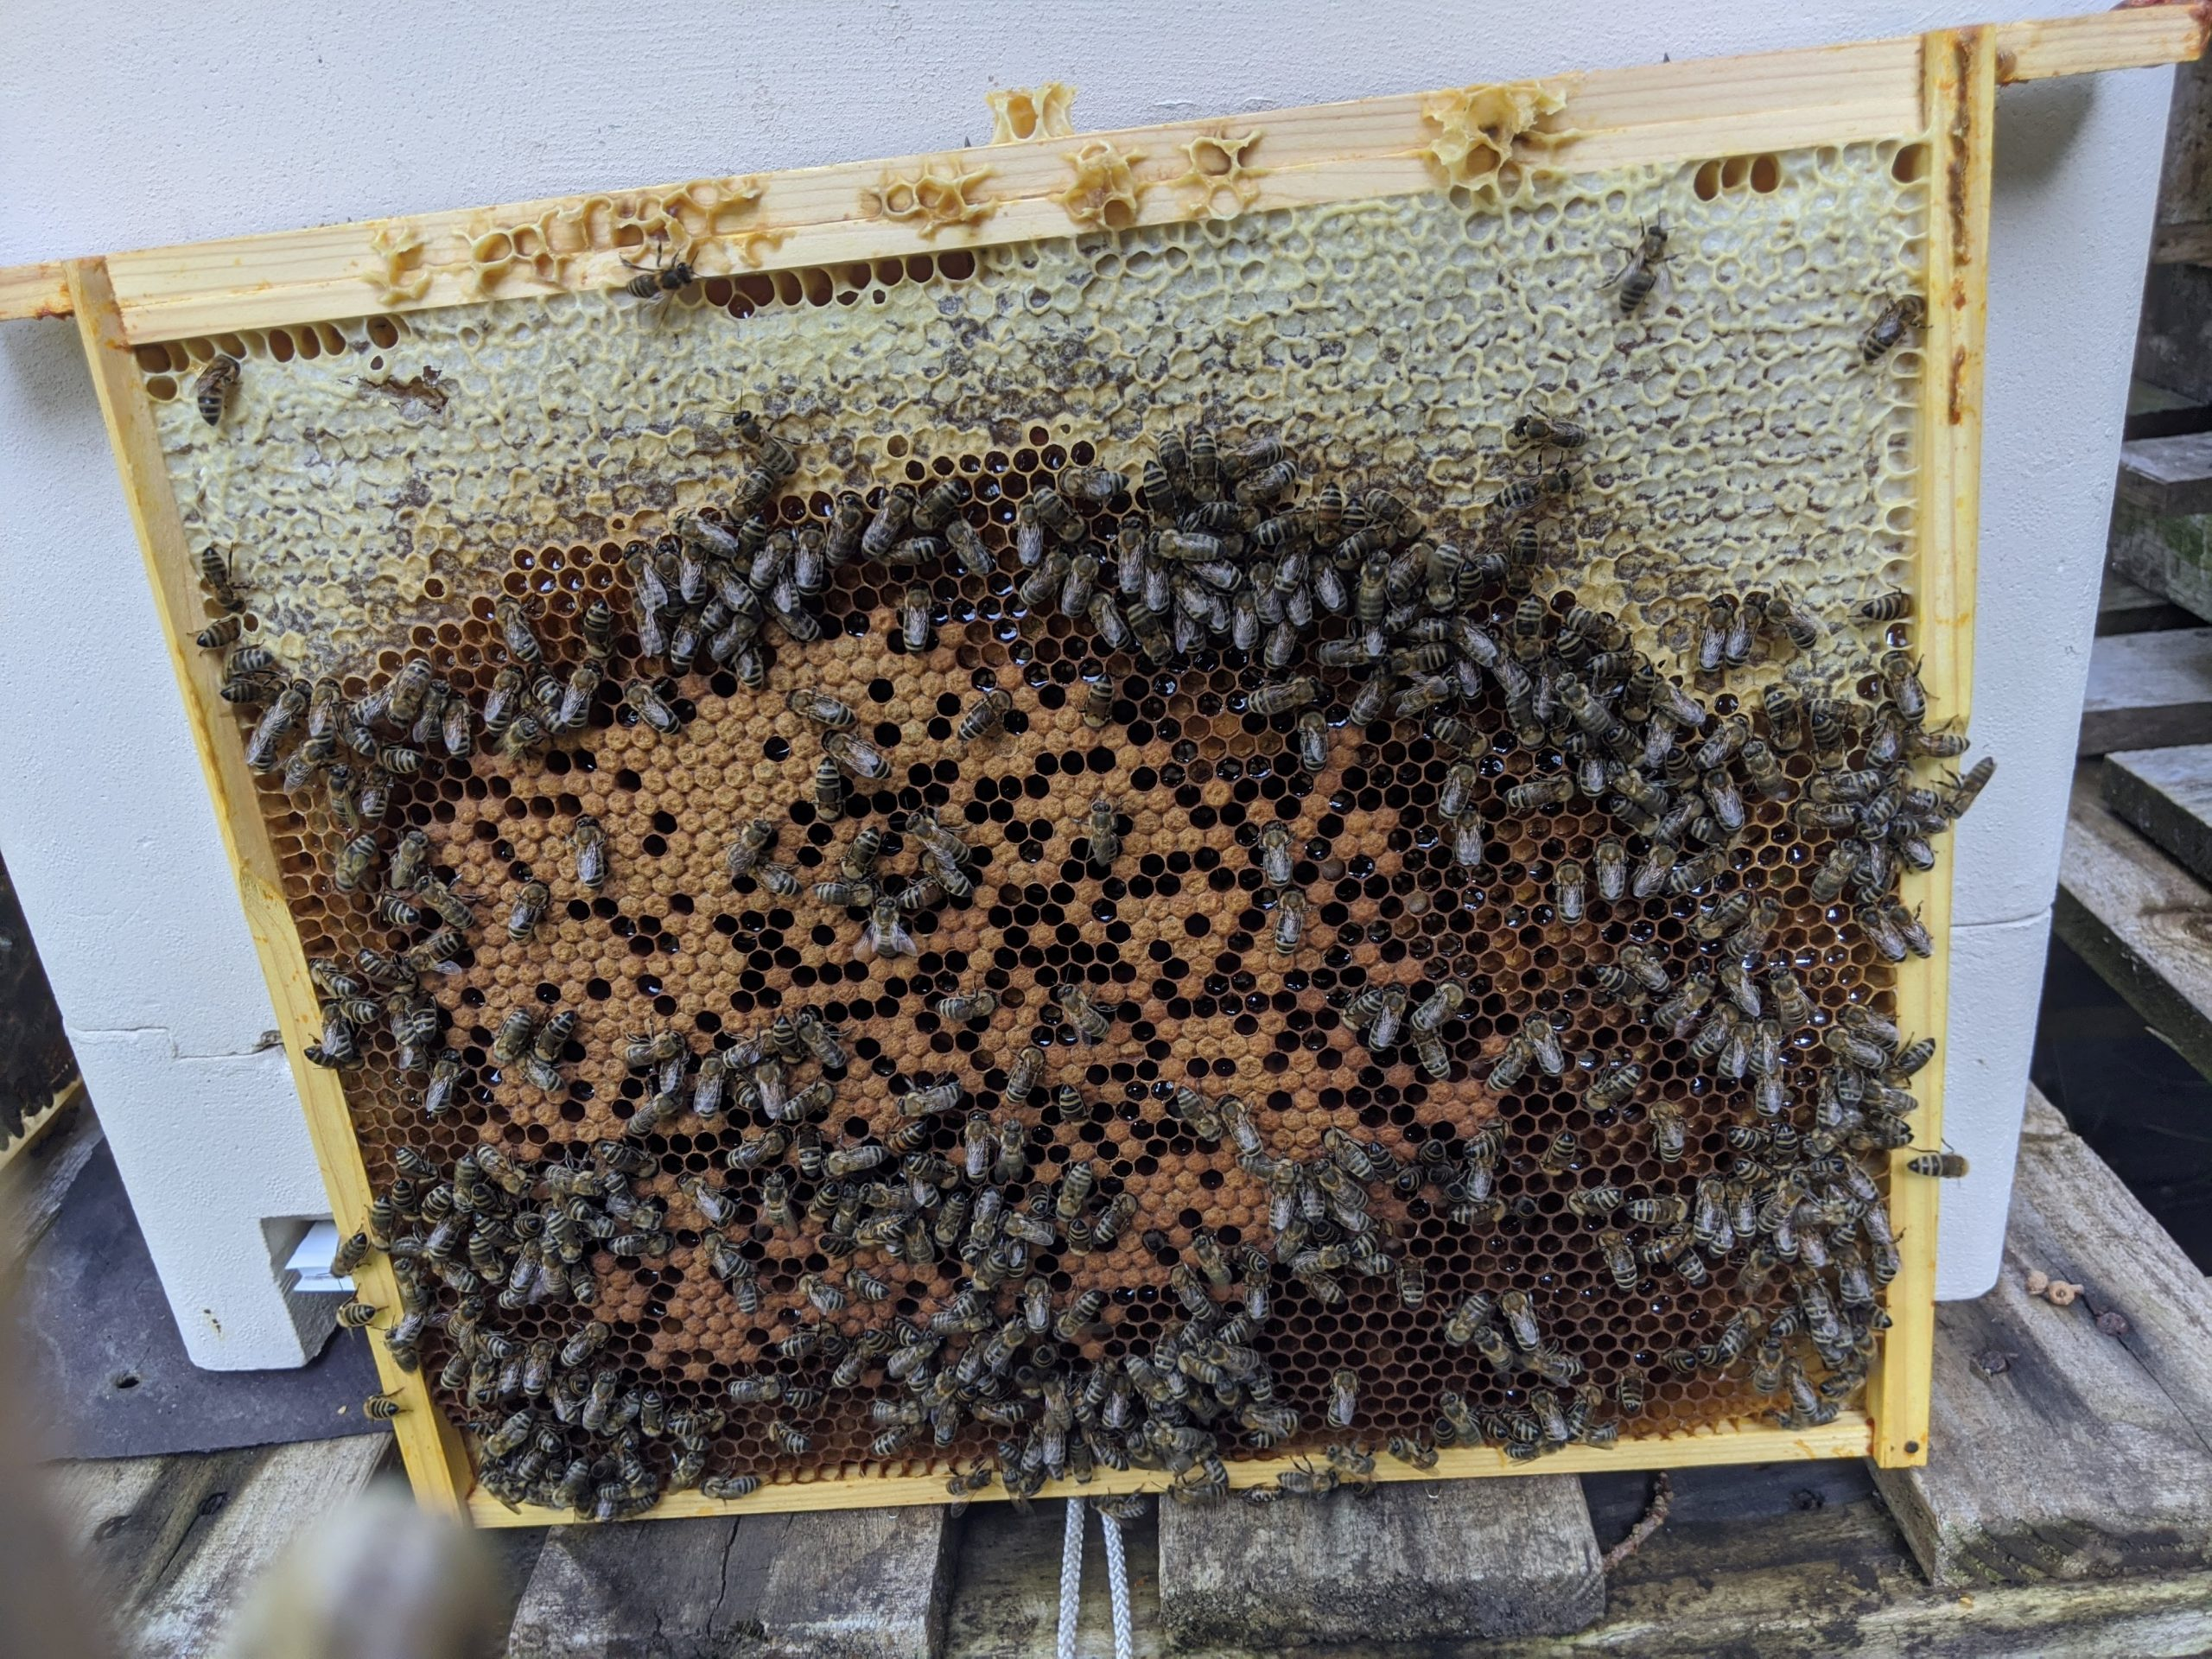 A frame of brood with nurse bees attending